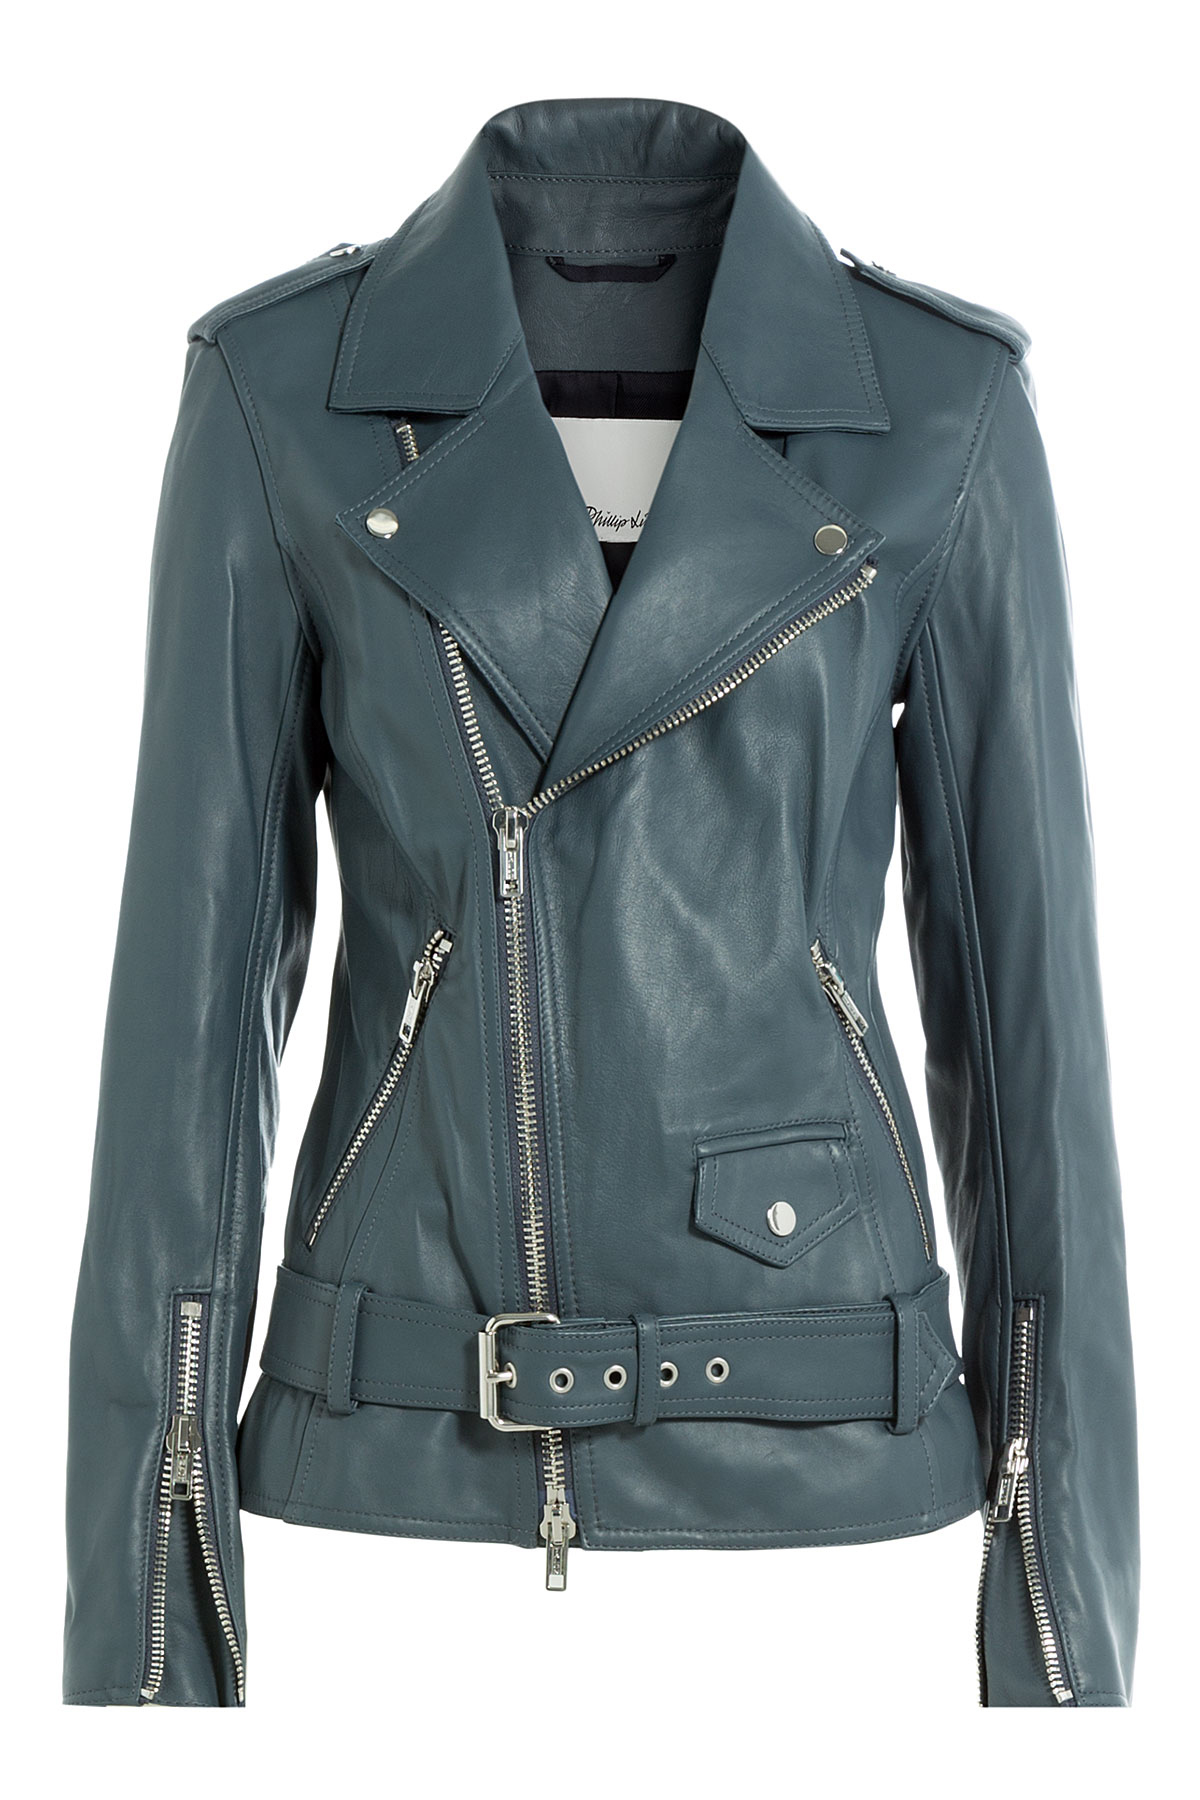 21 Leather Jackets at Every Price Point - Winter Jackets